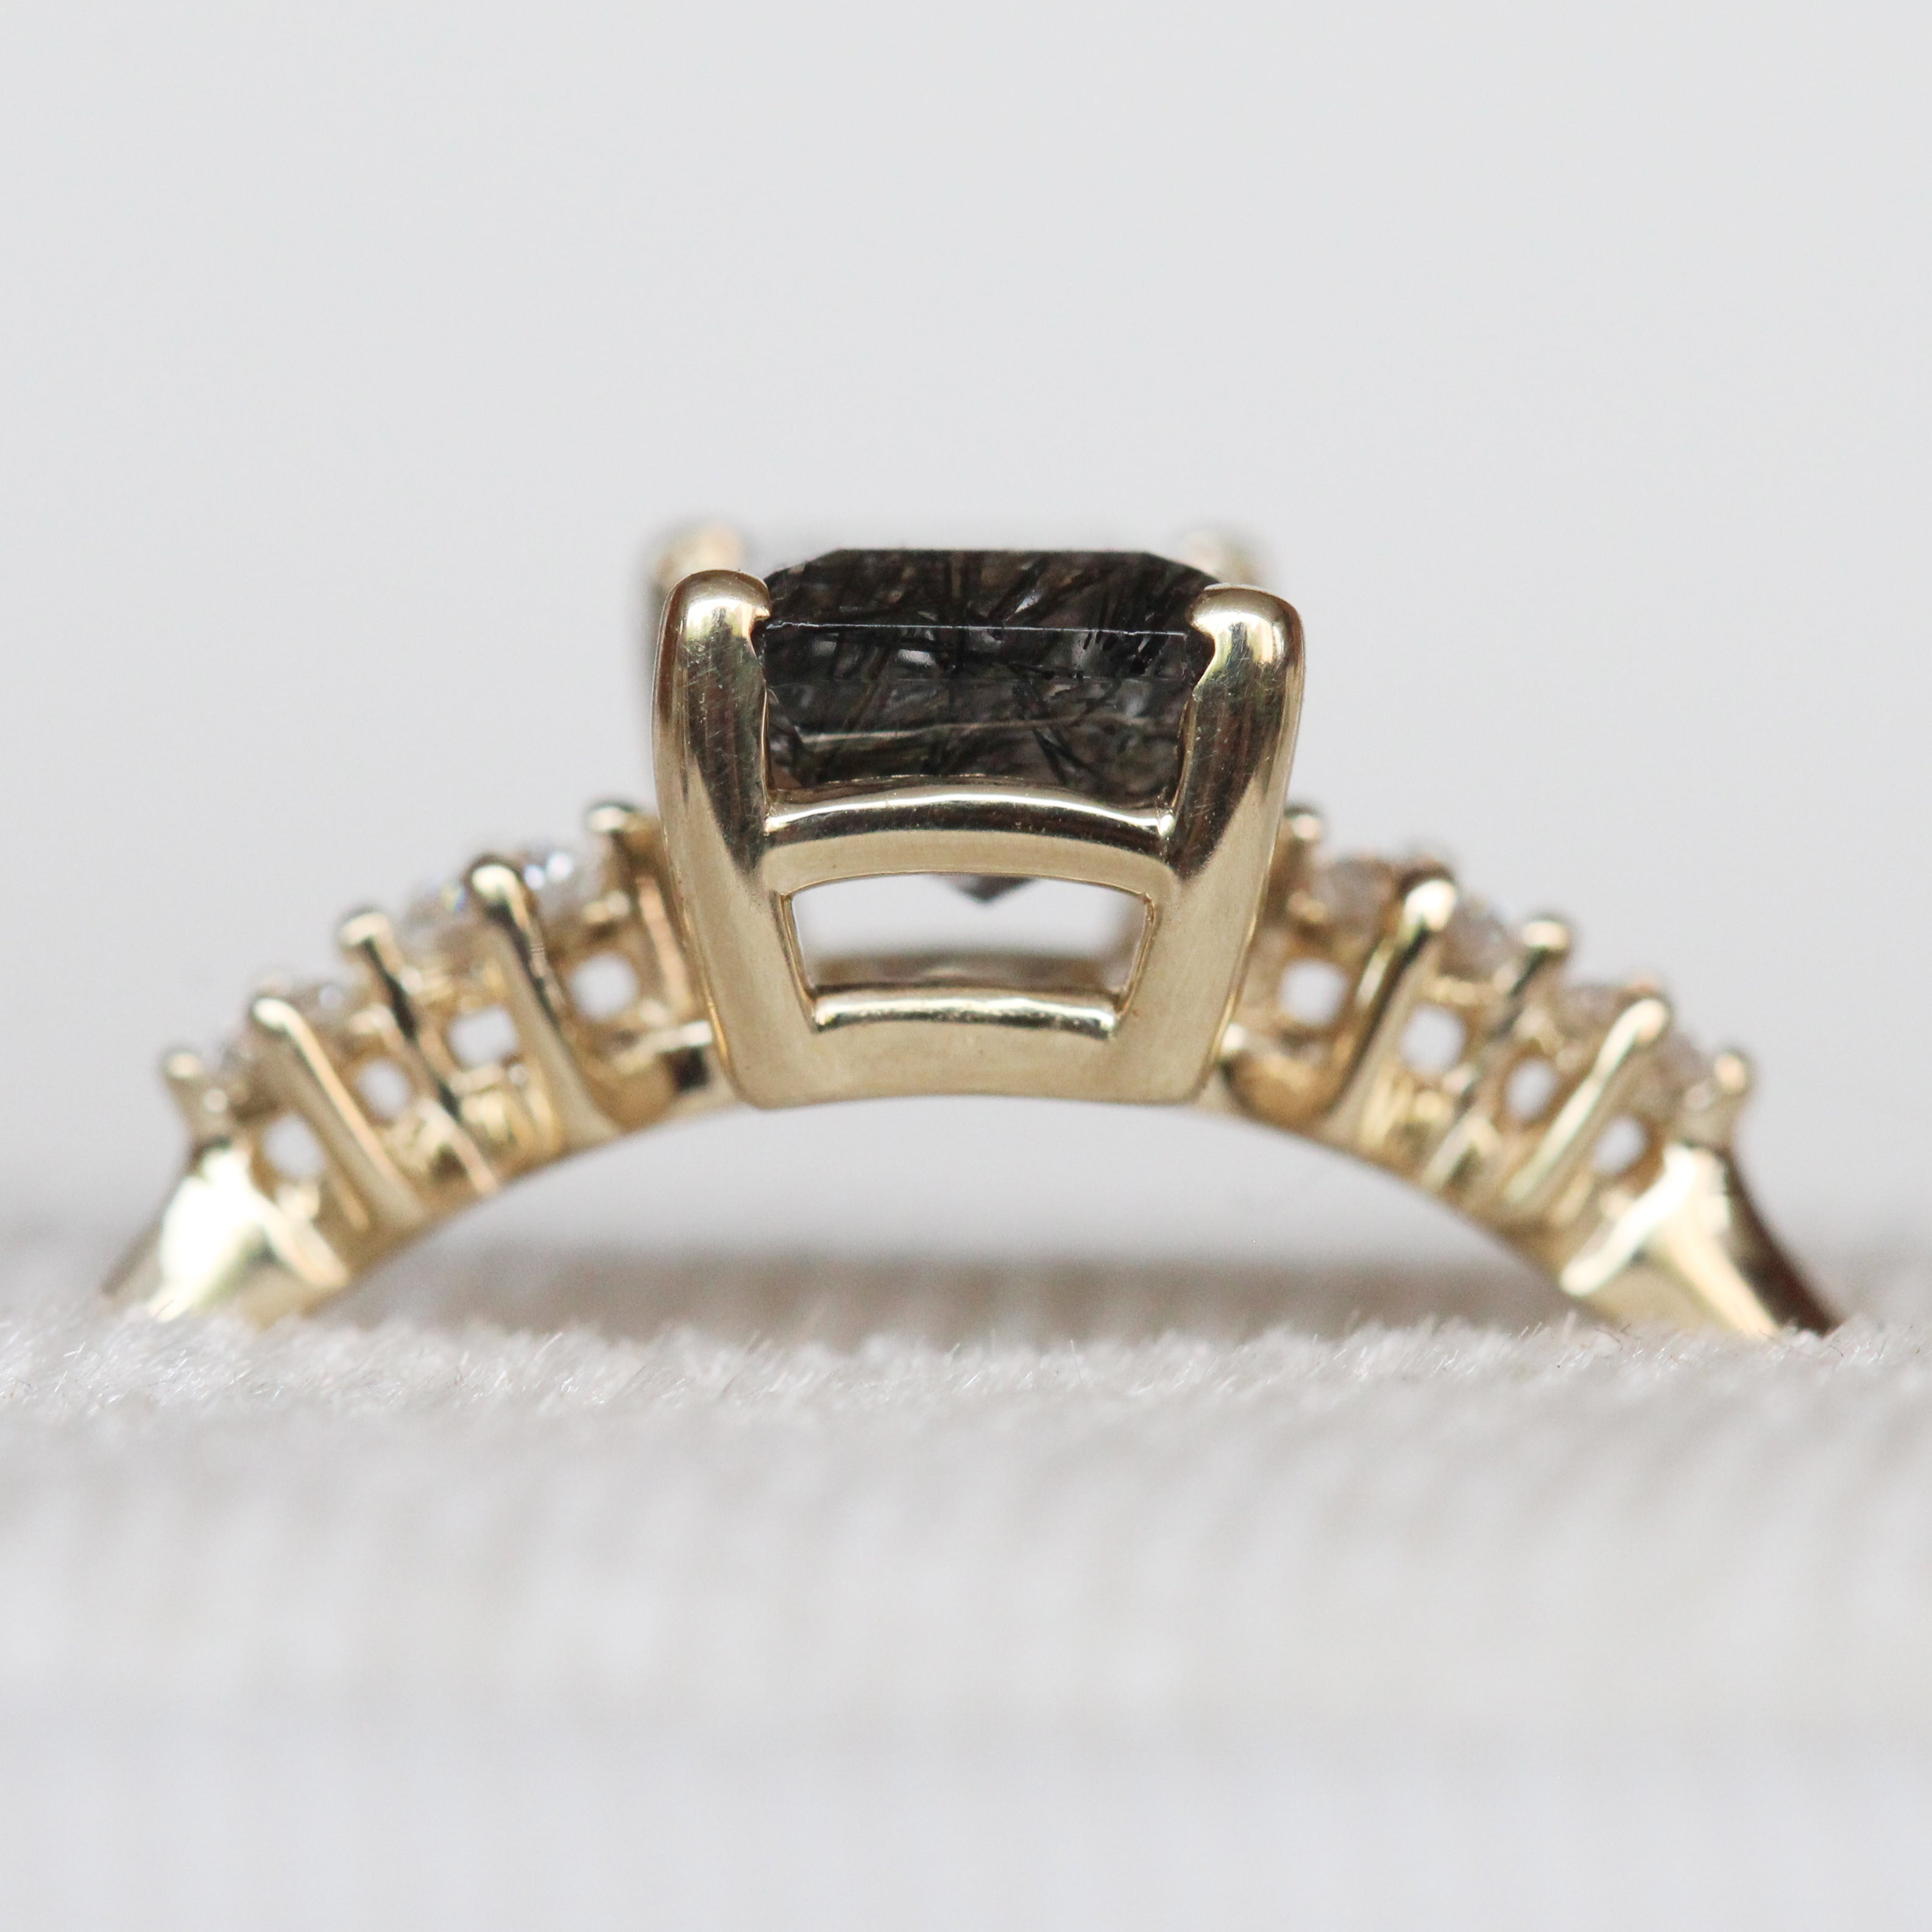 Cordelia ring with .88ct Black Celestial Tourmalinated Quartz in 14k yellow gold with white accent diamonds - ready to size and ship - Salt & Pepper Celestial Diamond Engagement Rings and Wedding Bands  by Midwinter Co.